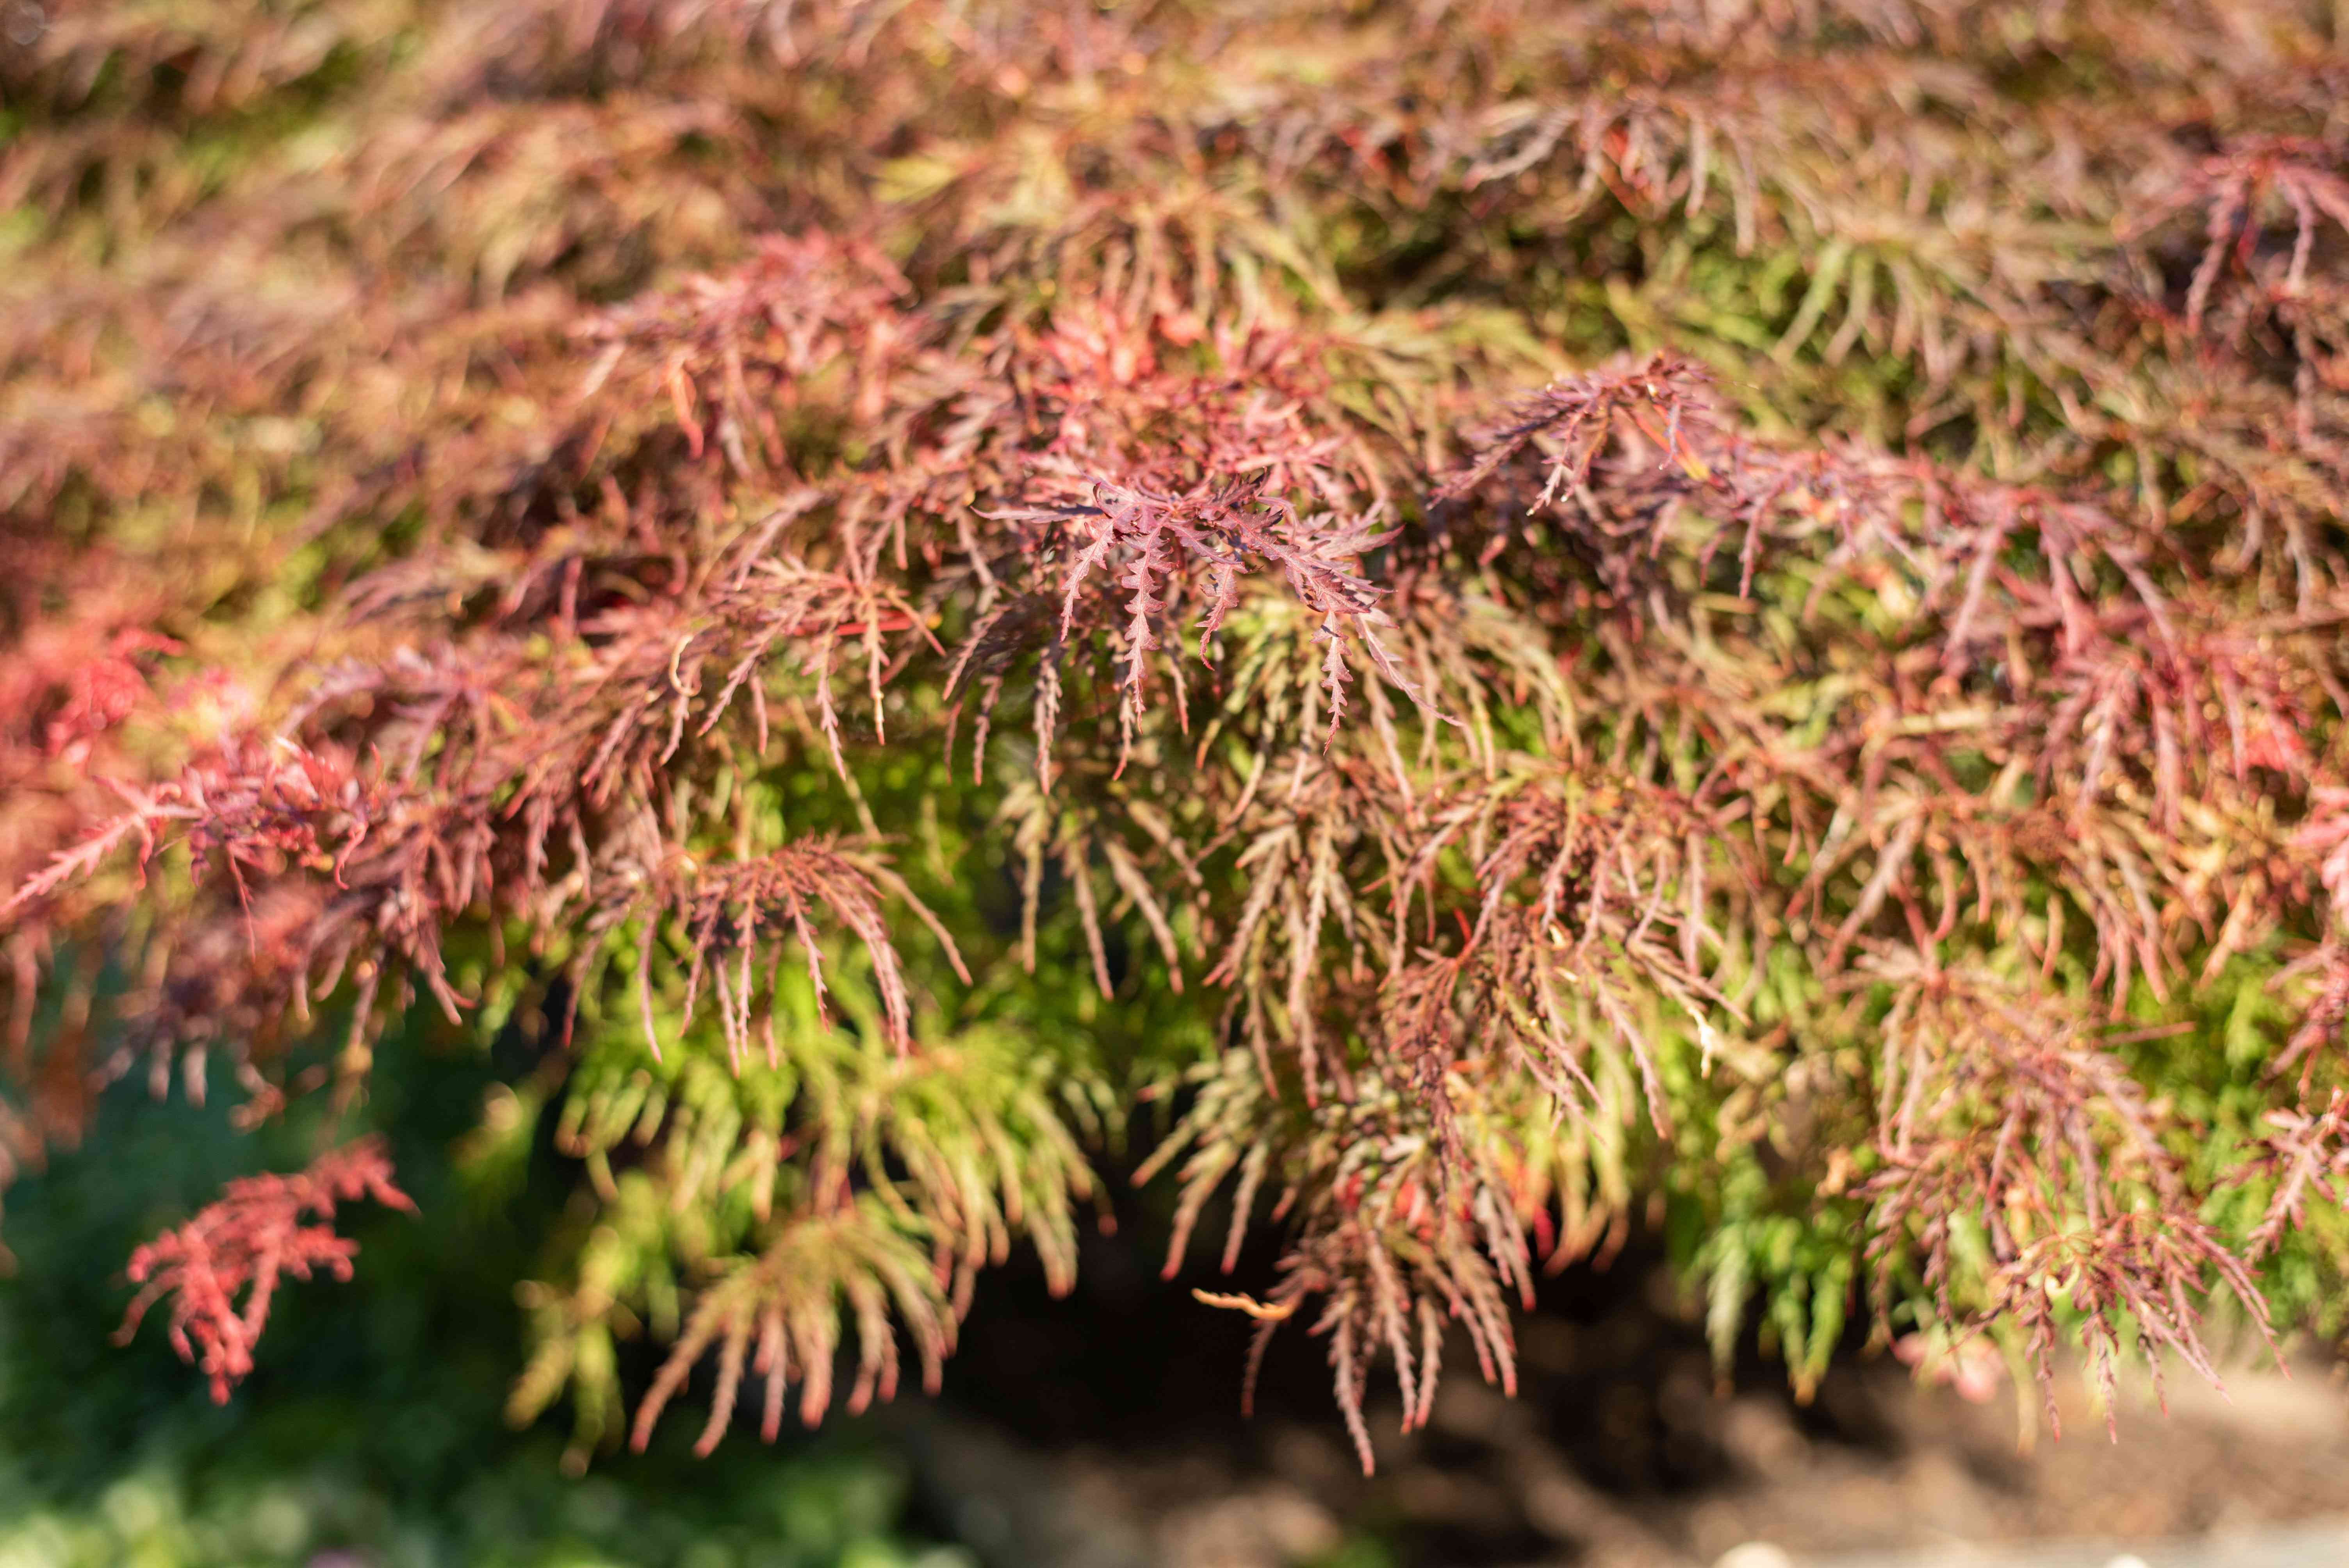 Japanese maple 'Crimson Queen' tree branches with weeping lace-like green and bronze colored leaves